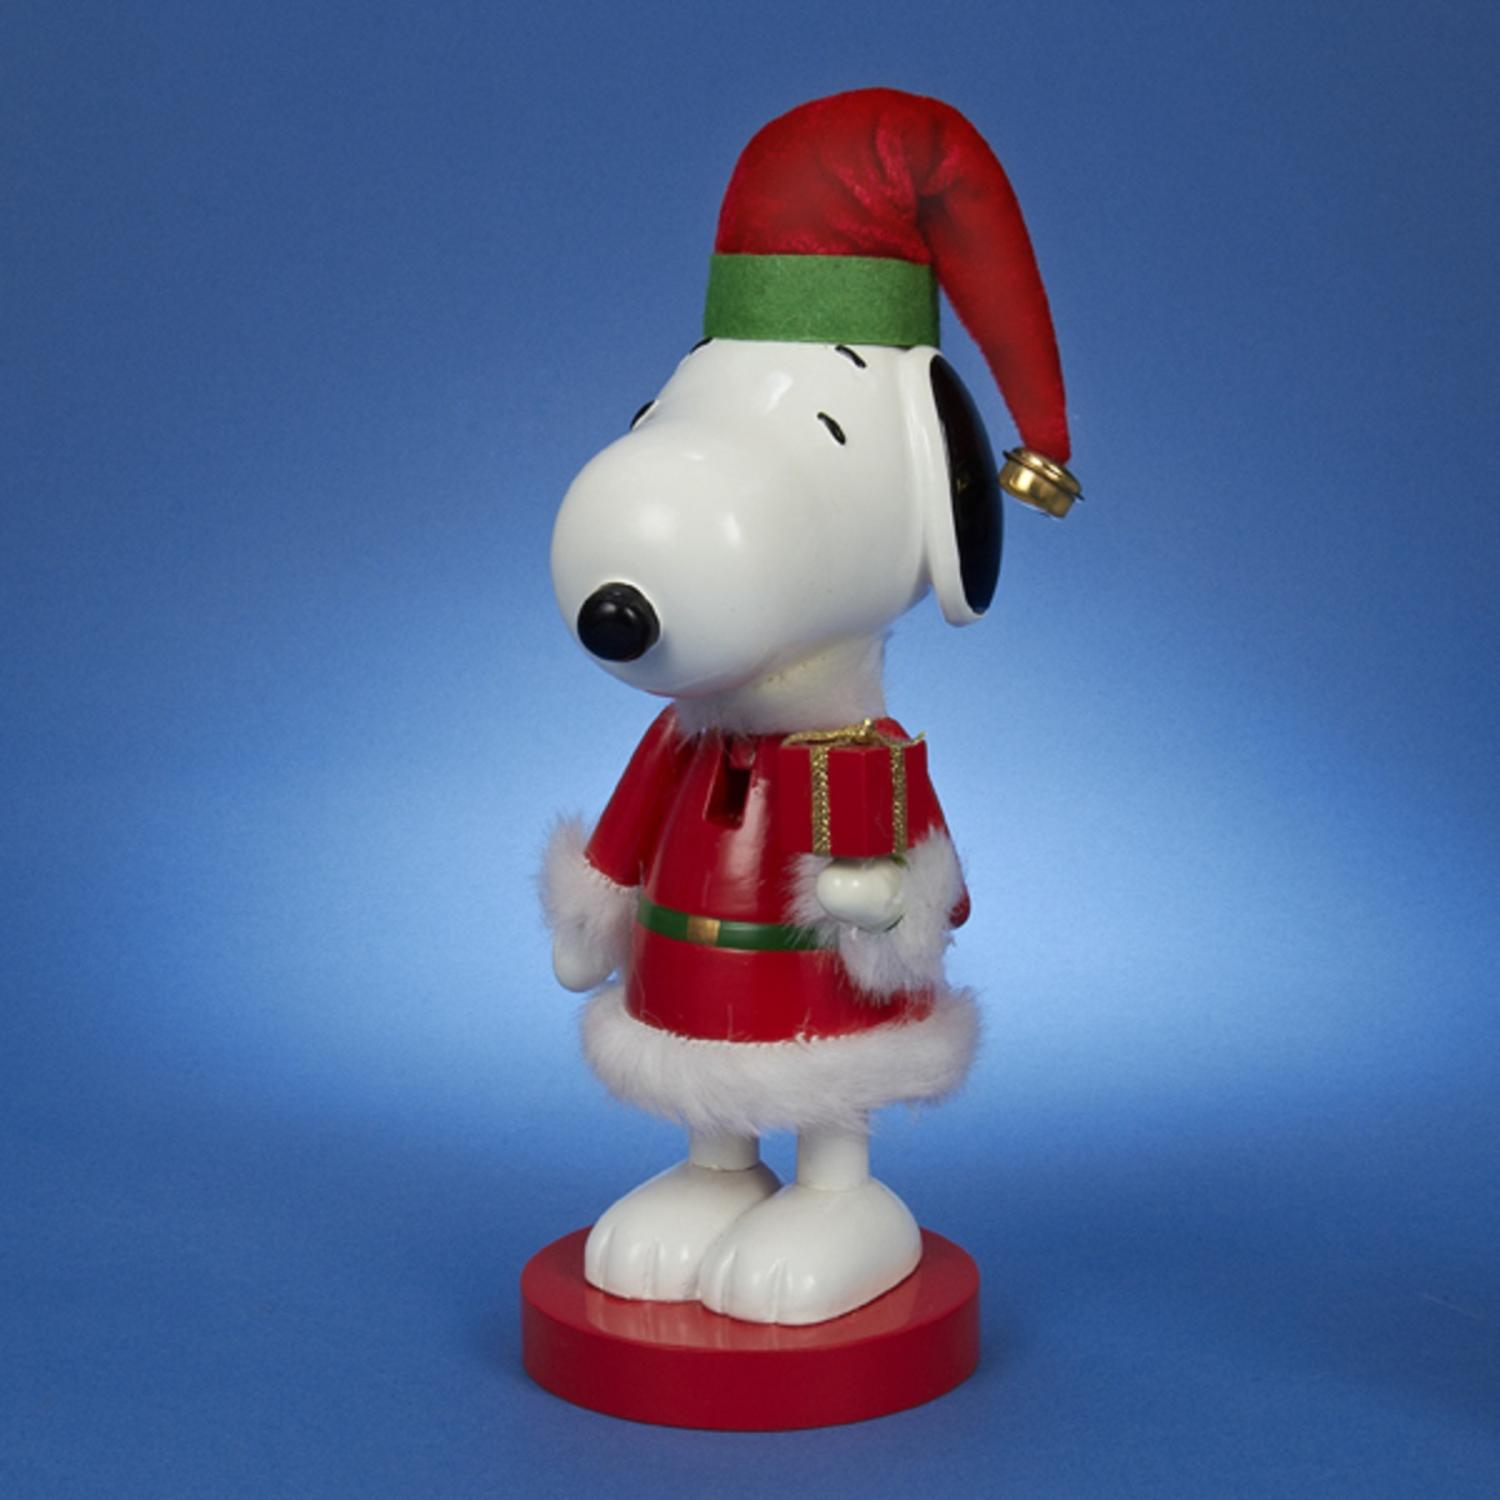 "10"" Peanuts Snoopy in Red Santa Suit Decorative christmas Nutcracker"